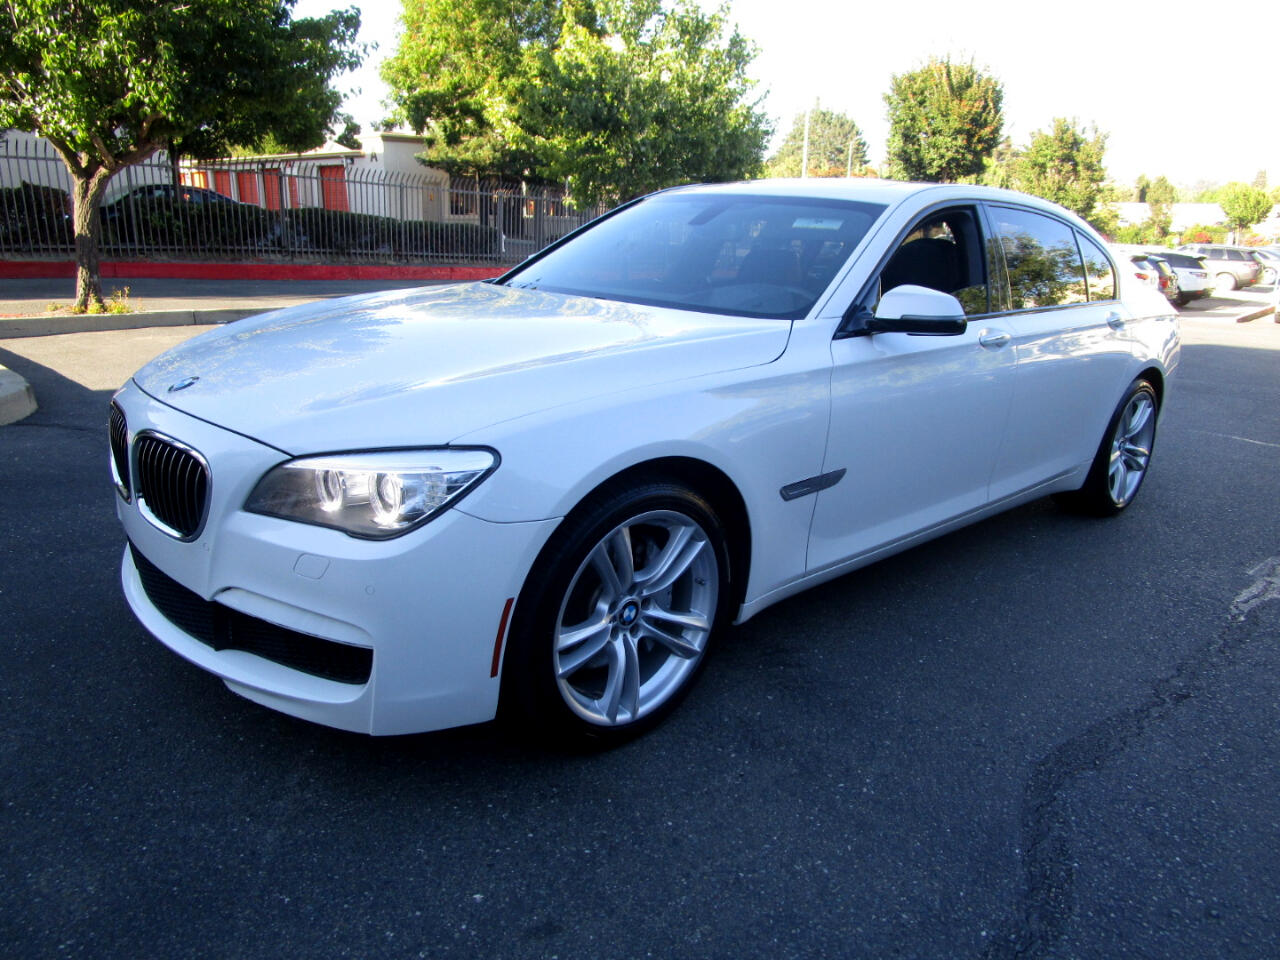 2013 BMW 740Li M SPORT-PREM PKG*HEAT-VENTED SEATS*HEADS-UP DISPLA